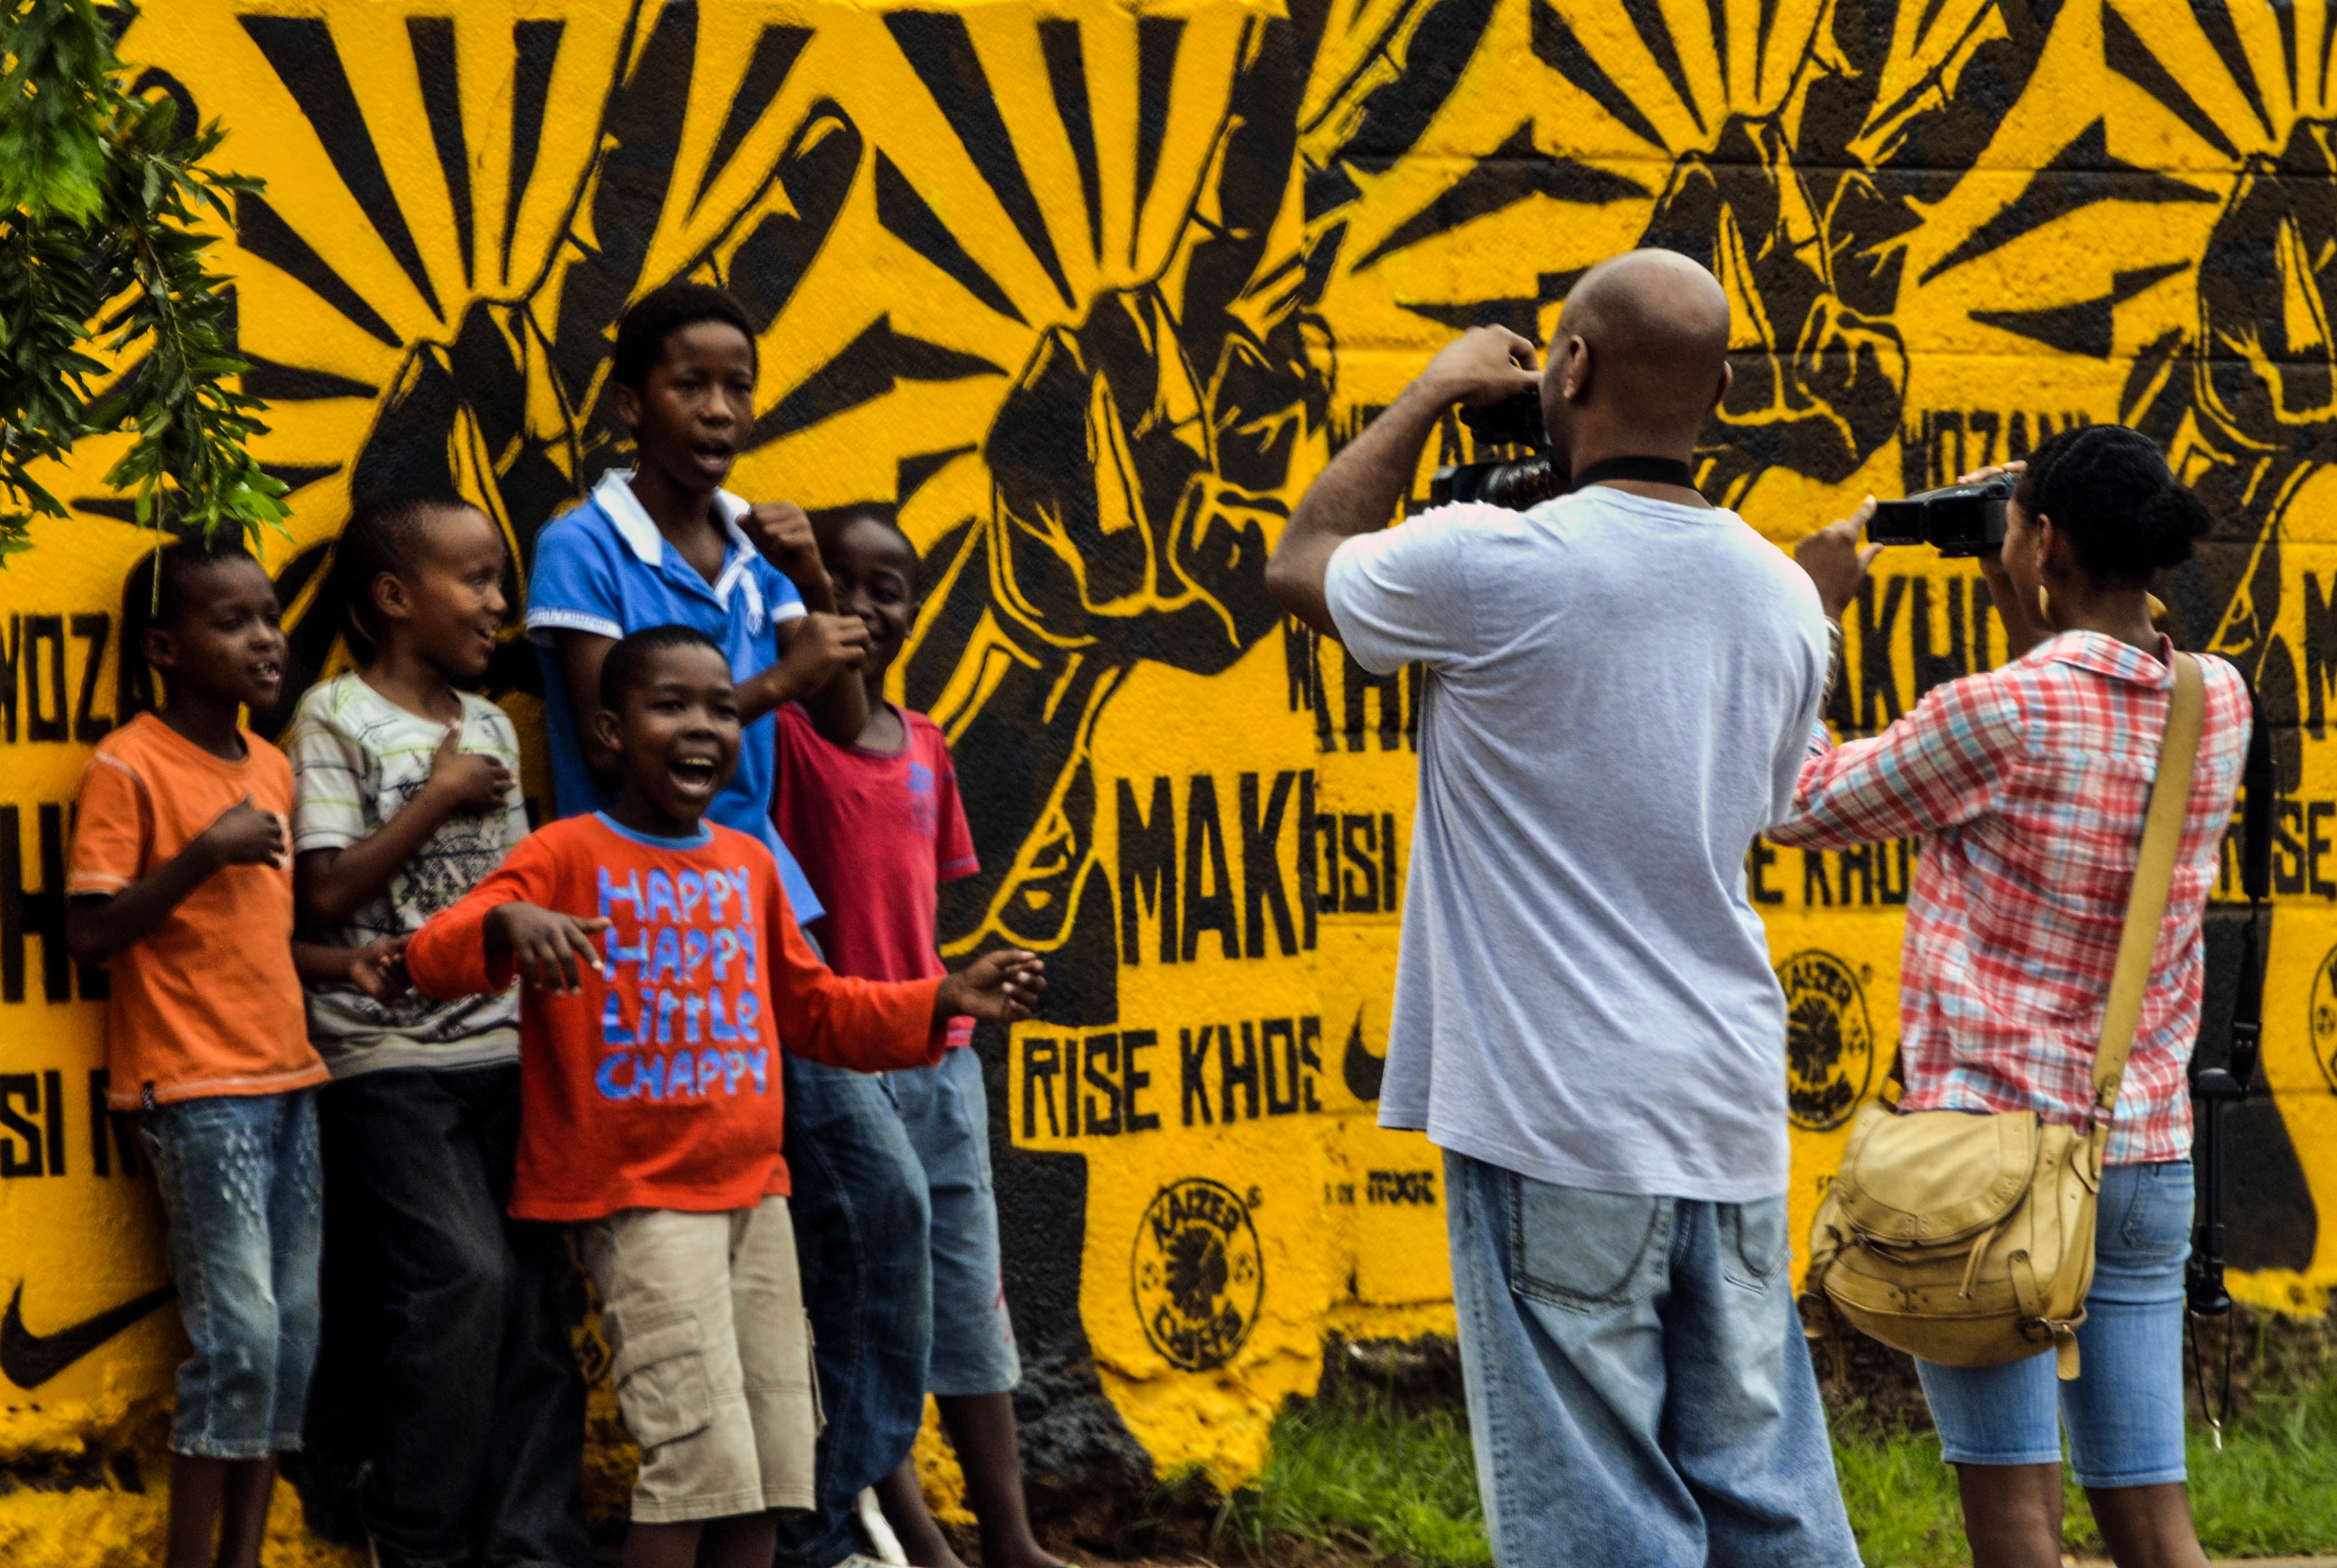 Snapping some photos of kids in SOWETO. Just be sure to show them the photos afterwards!